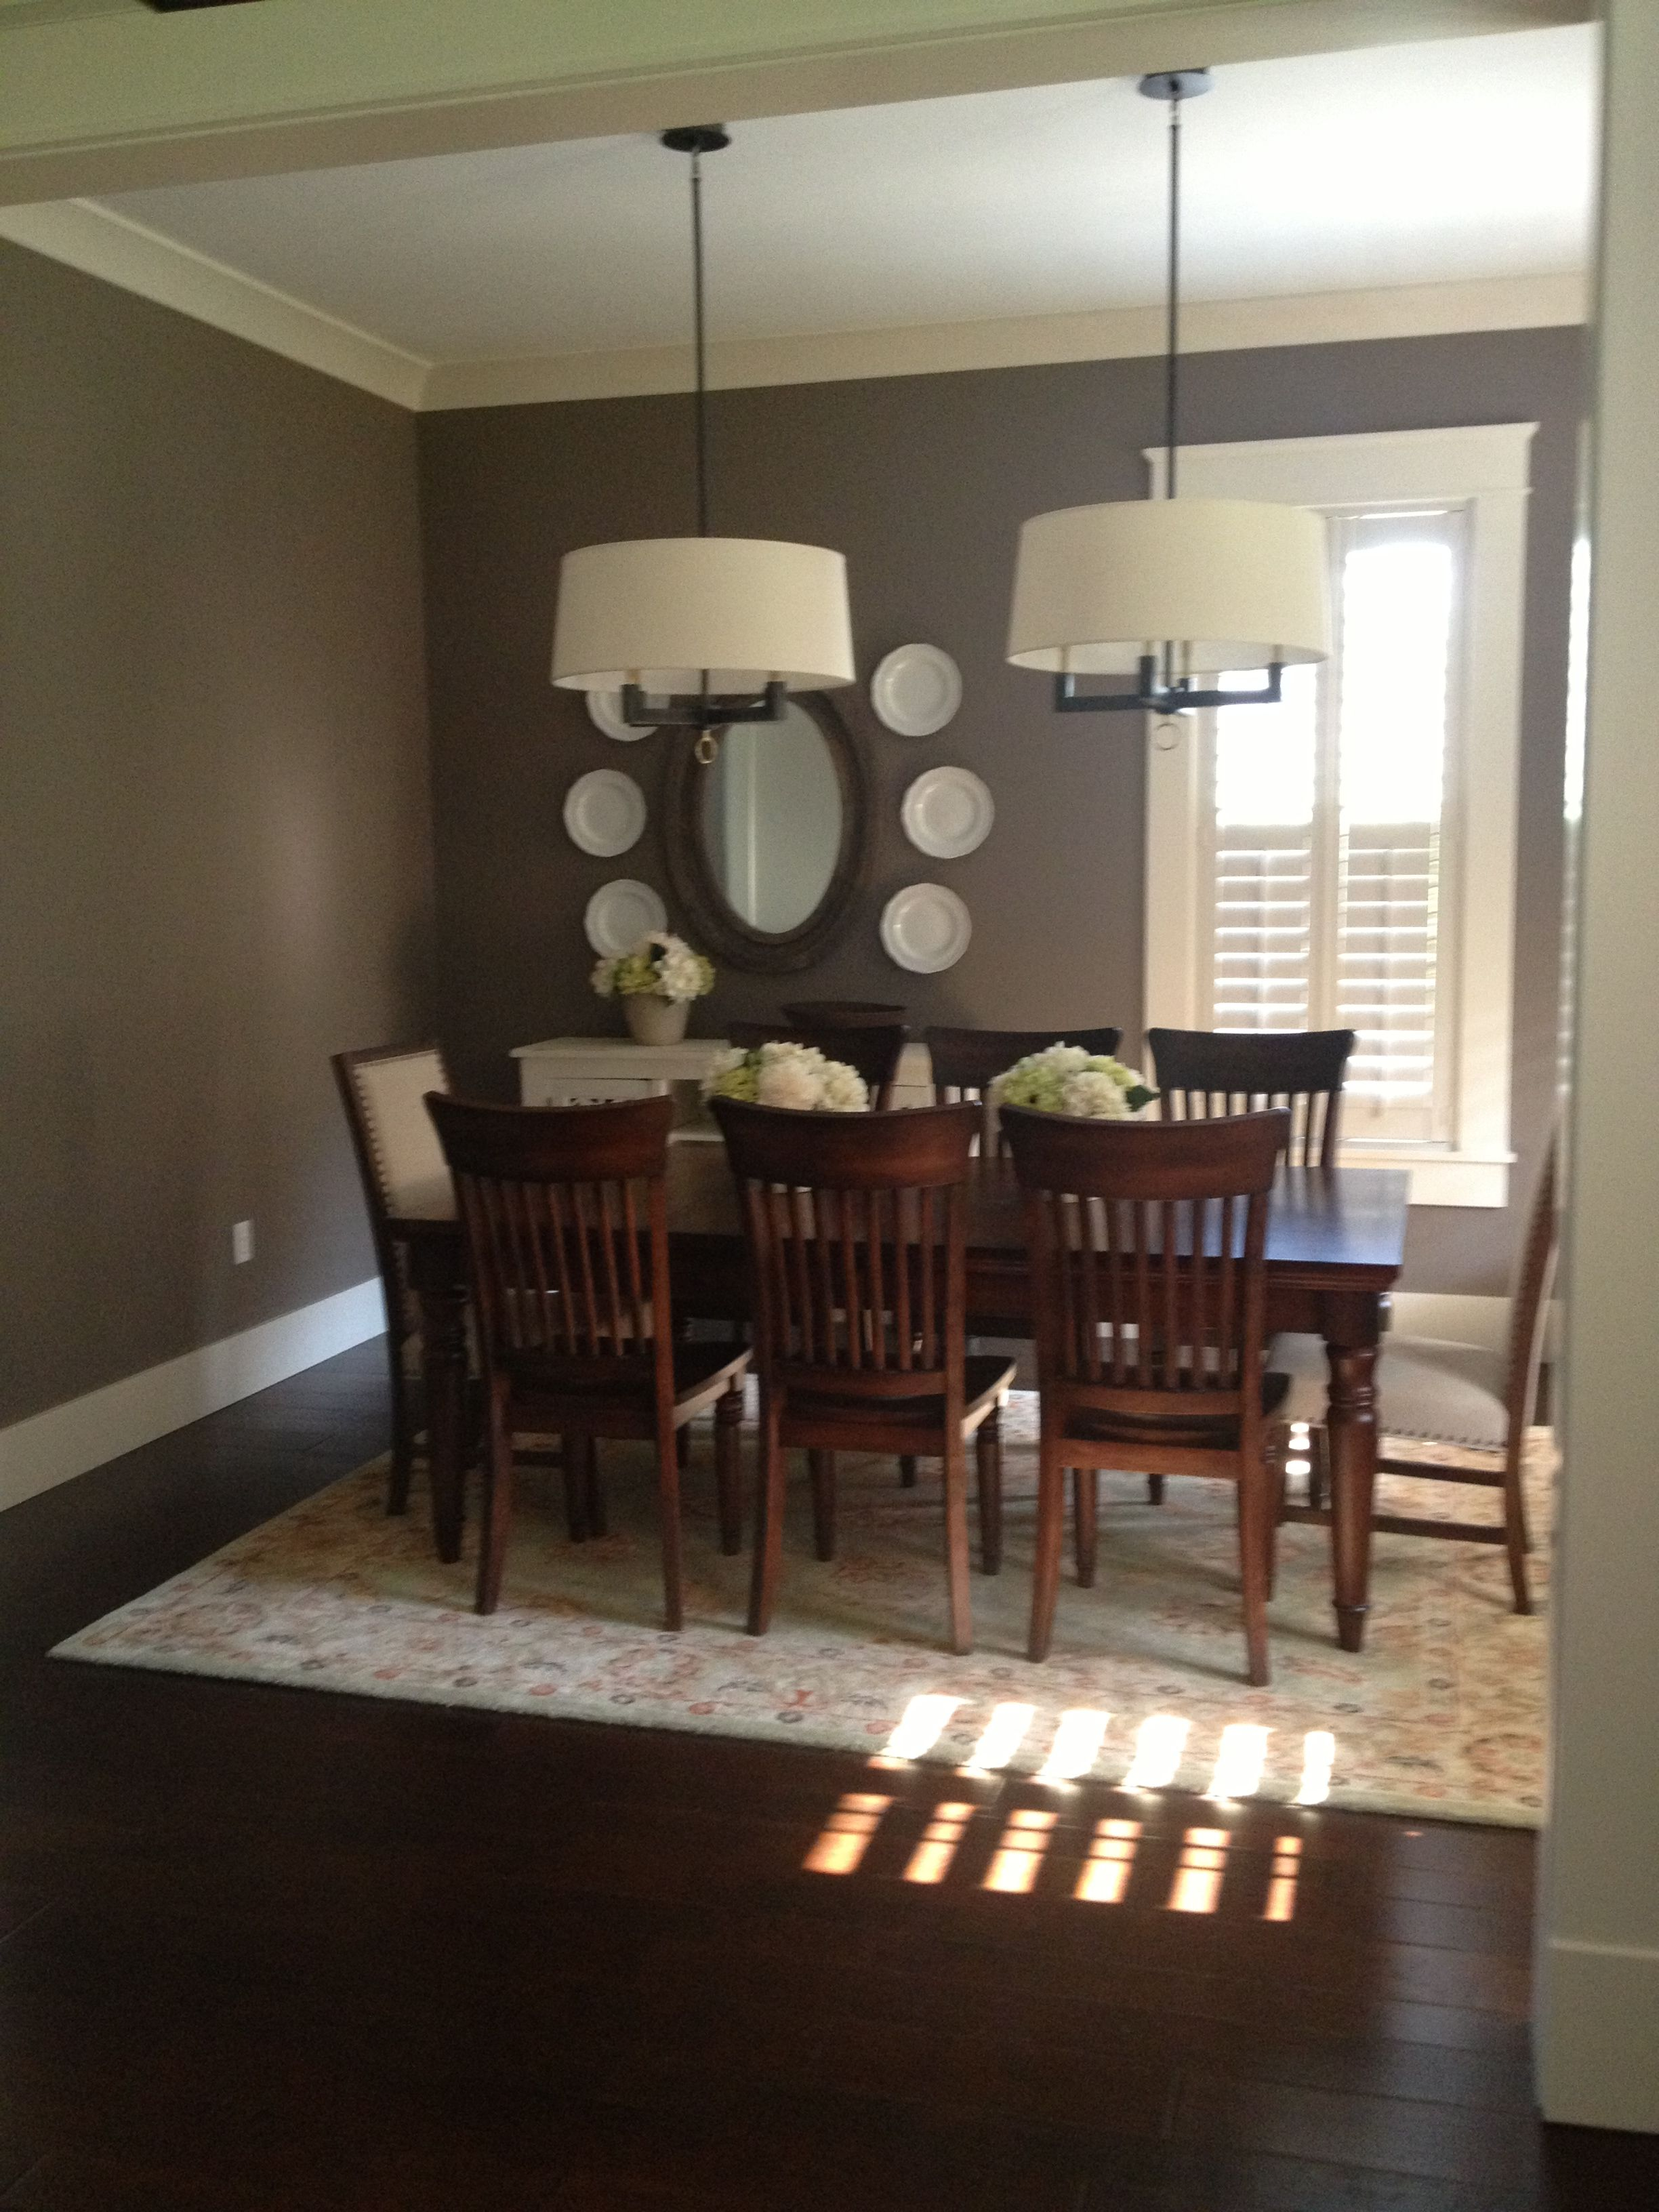 Room Facing Dining Table